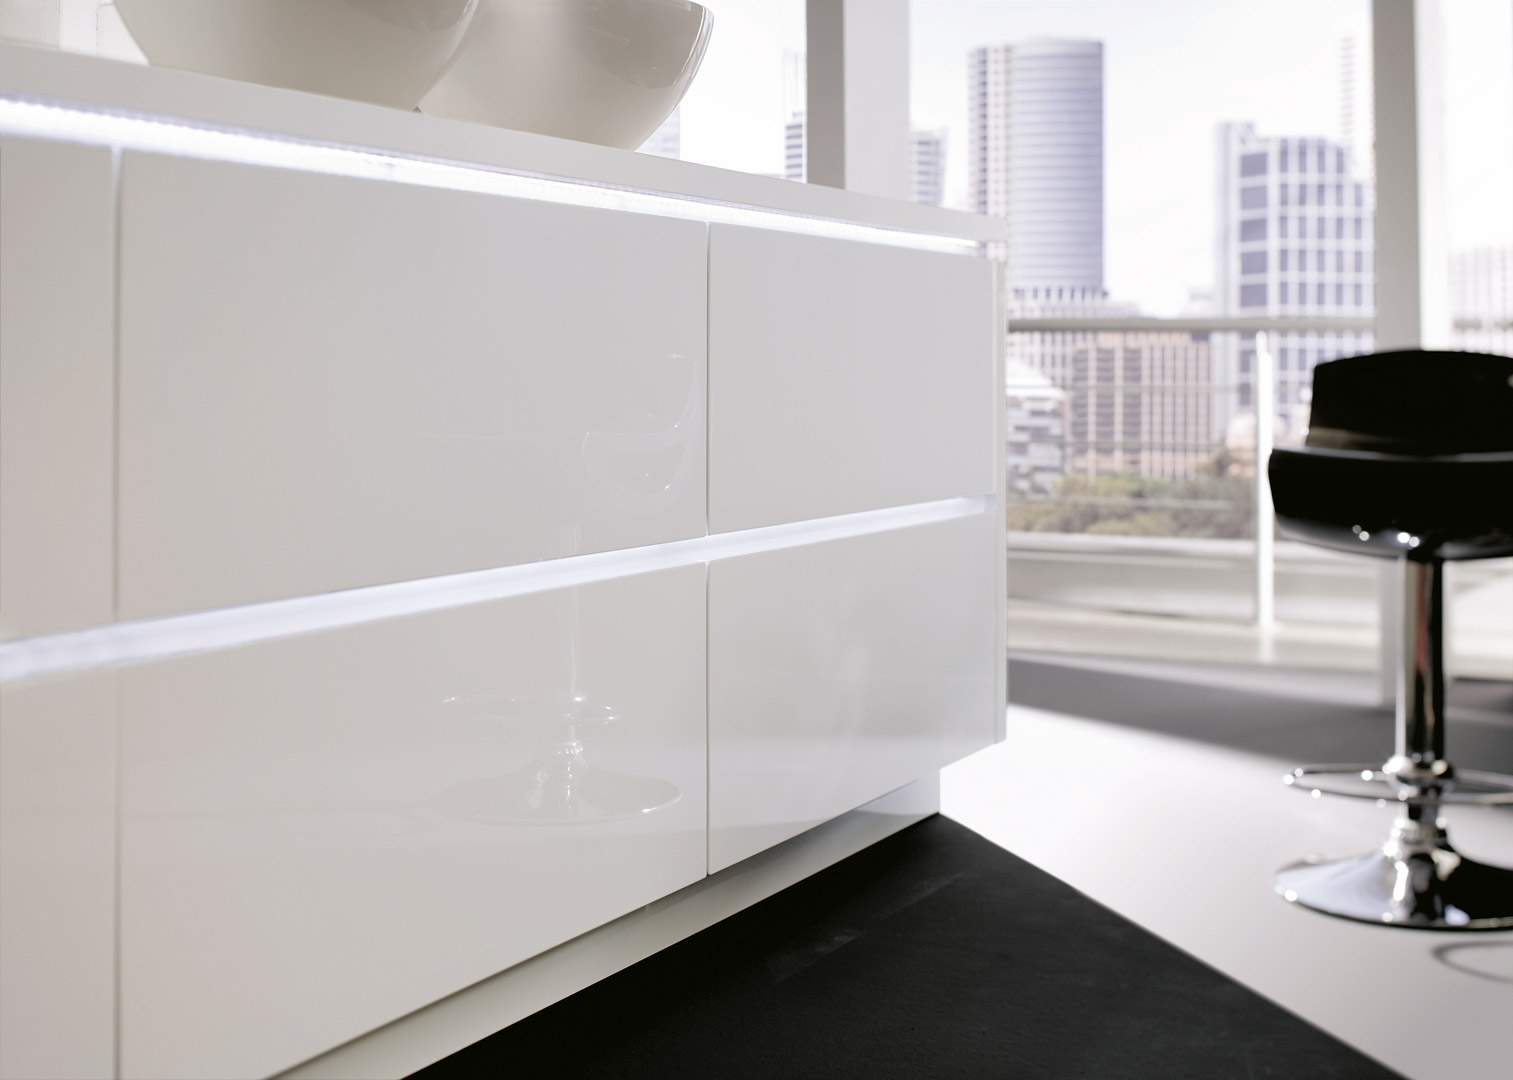 fitted kitchens by alno sussex surrey london. Black Bedroom Furniture Sets. Home Design Ideas